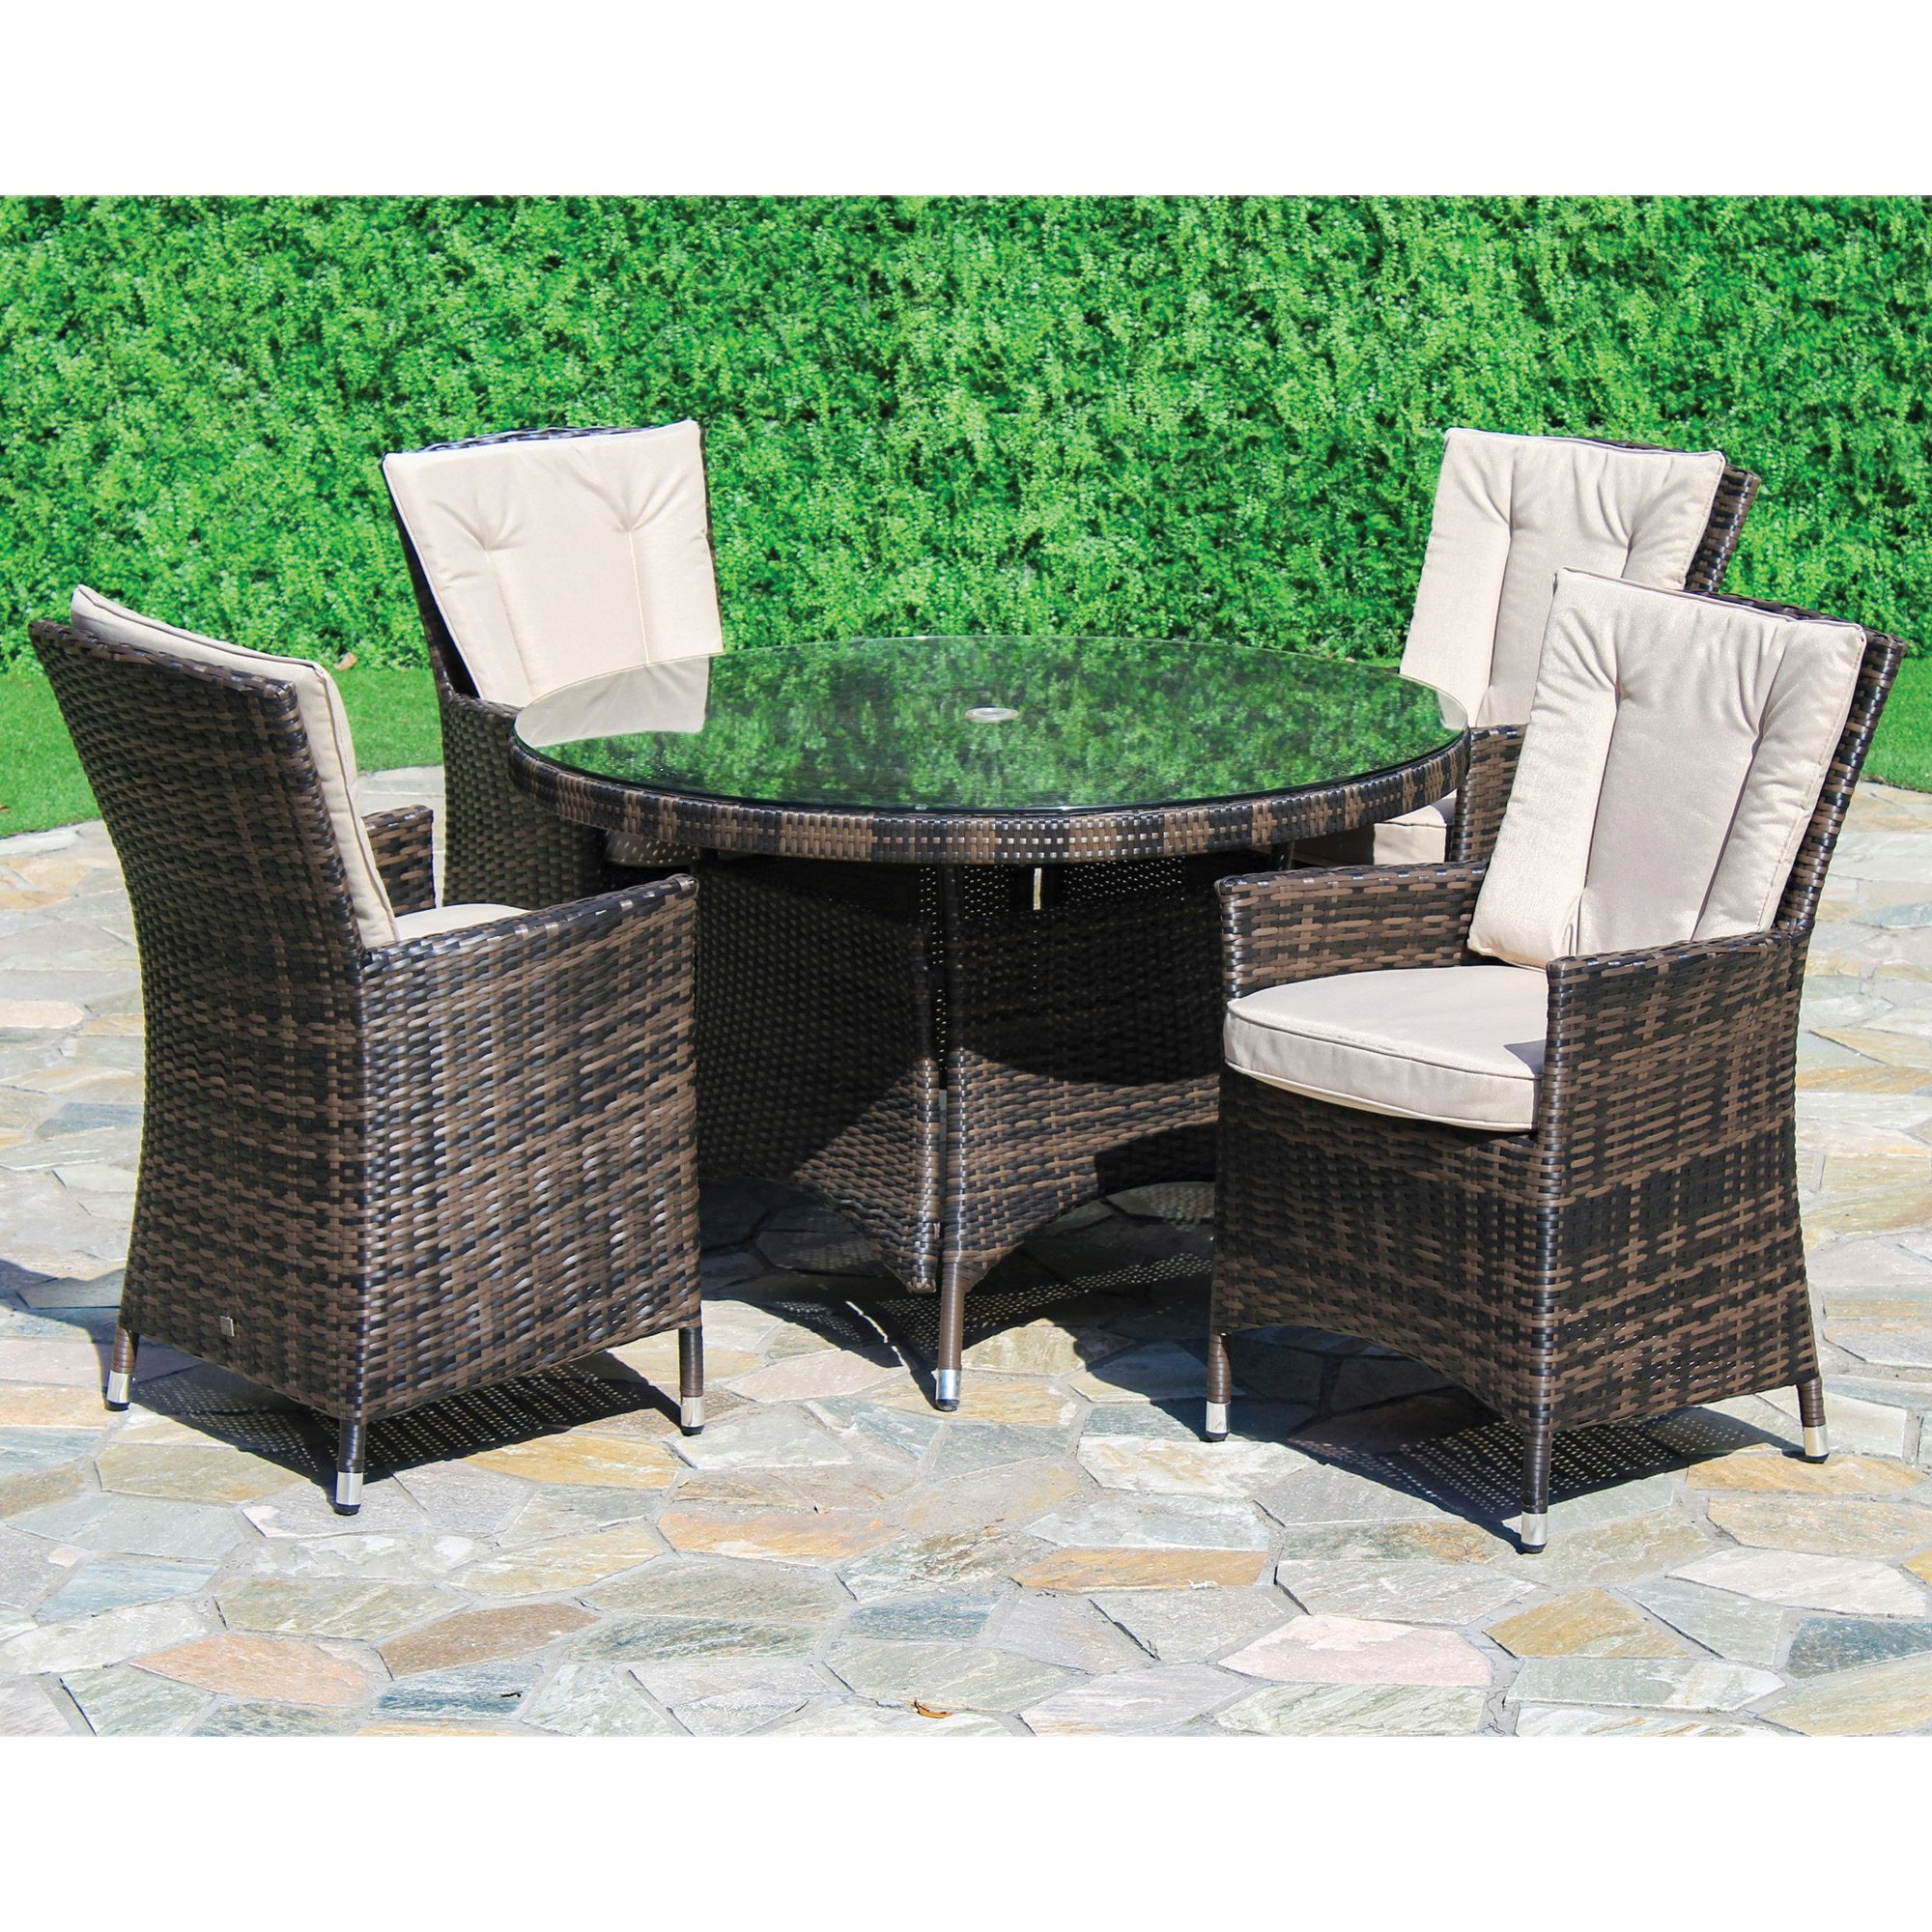 Maze Rattan Lagos Brown Garden Table and 6 Chairs